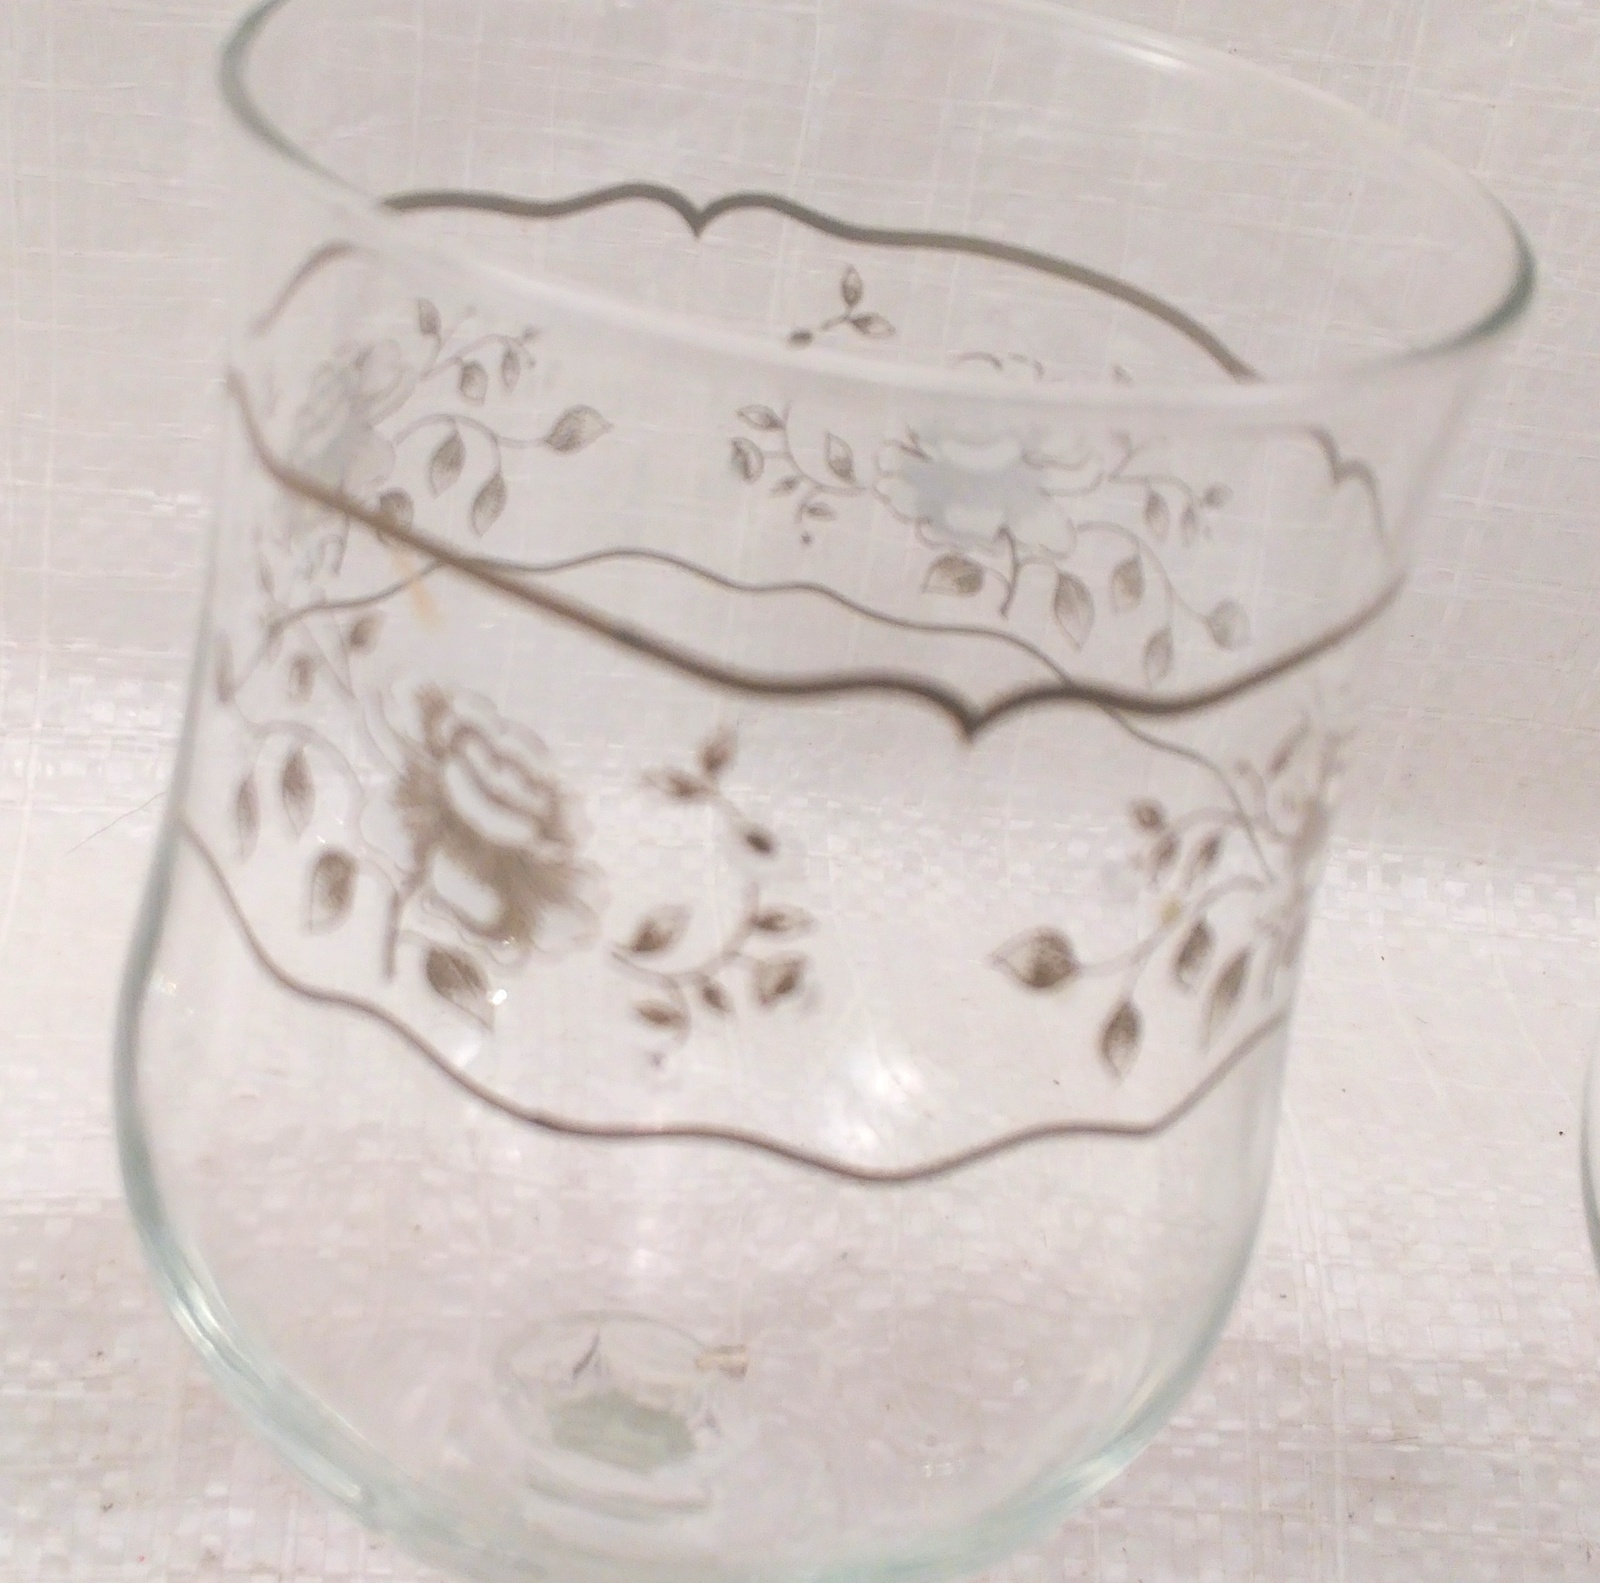 8 Crystal Wine Glasses with White and Silver Roses Design